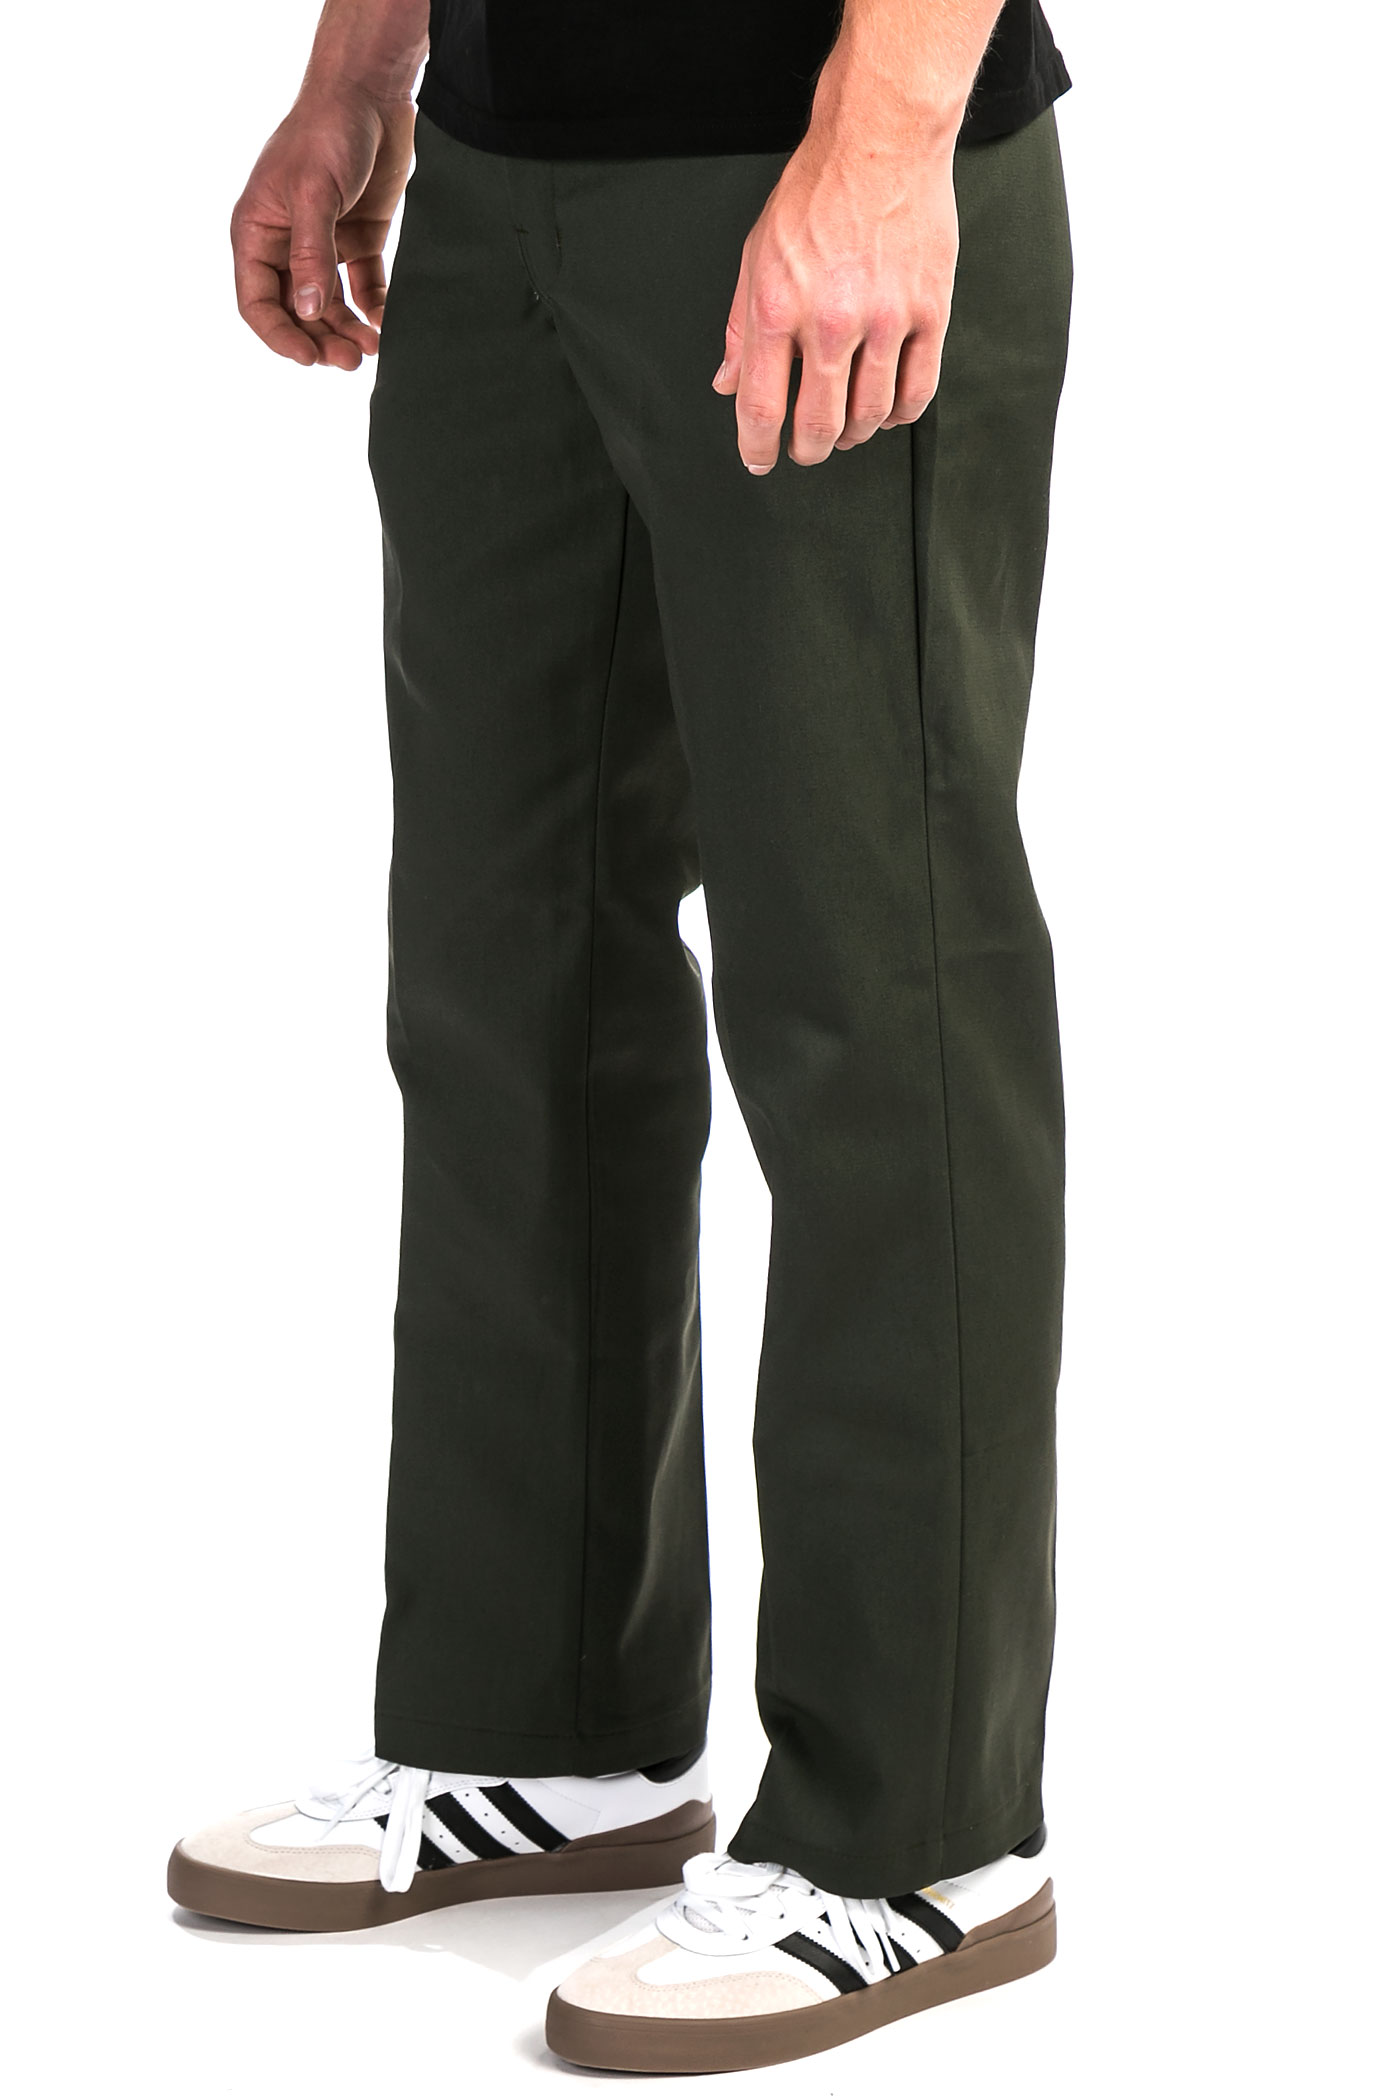 dickies o dog 874 workpant pantalons olive green achetez. Black Bedroom Furniture Sets. Home Design Ideas